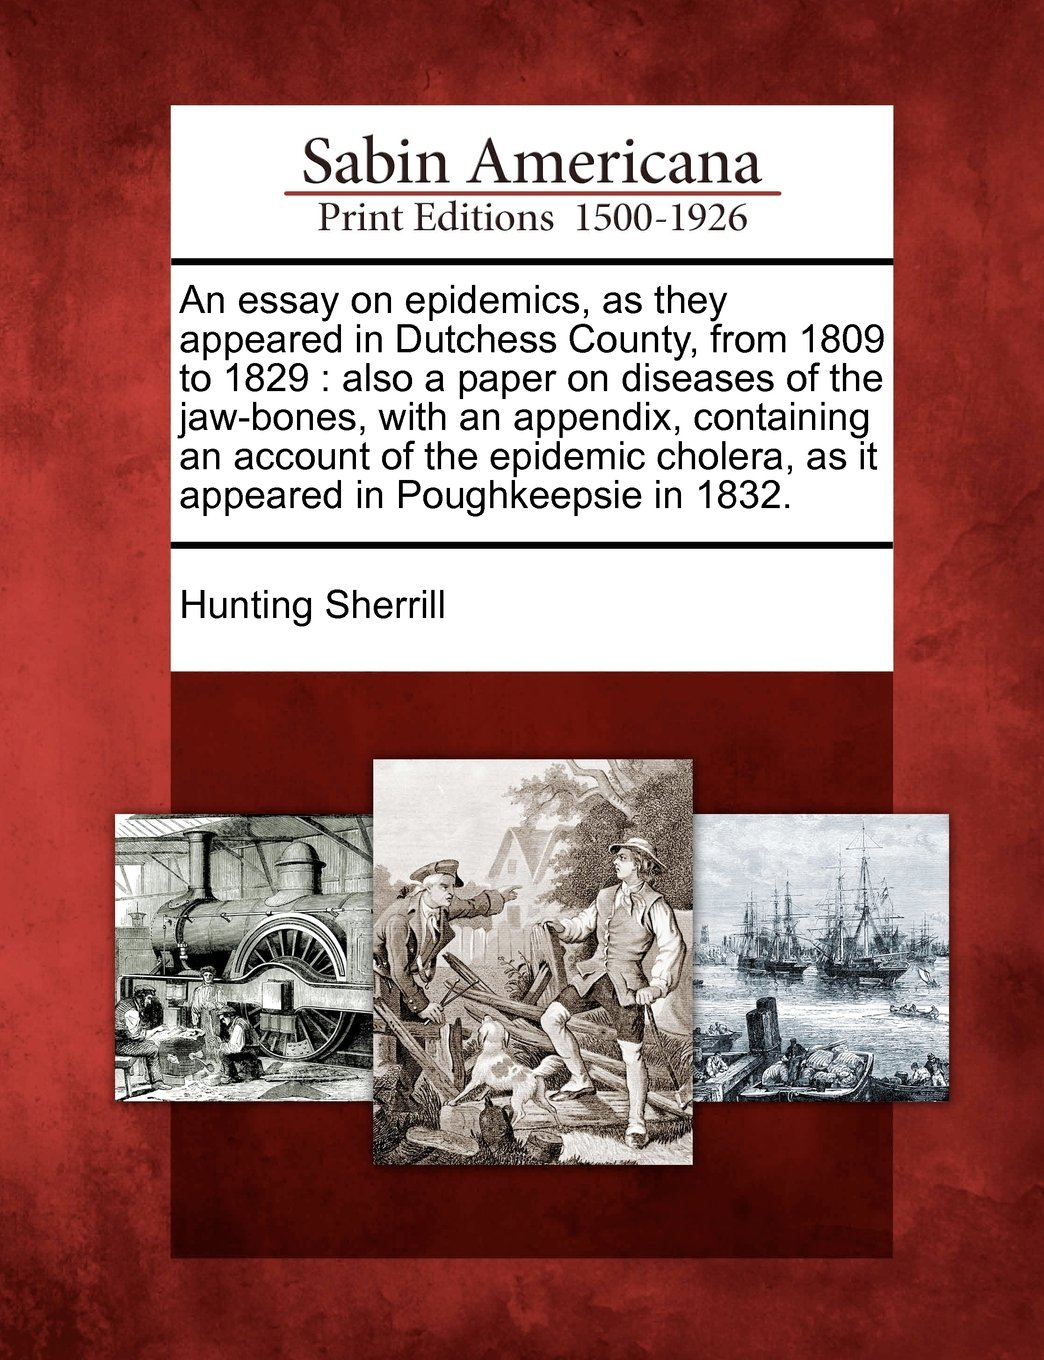 Download An essay on epidemics, as they appeared in Dutchess County, from 1809 to 1829: also a paper on diseases of the jaw-bones, with an appendix, containing ... as it appeared in Poughkeepsie in 1832. pdf epub